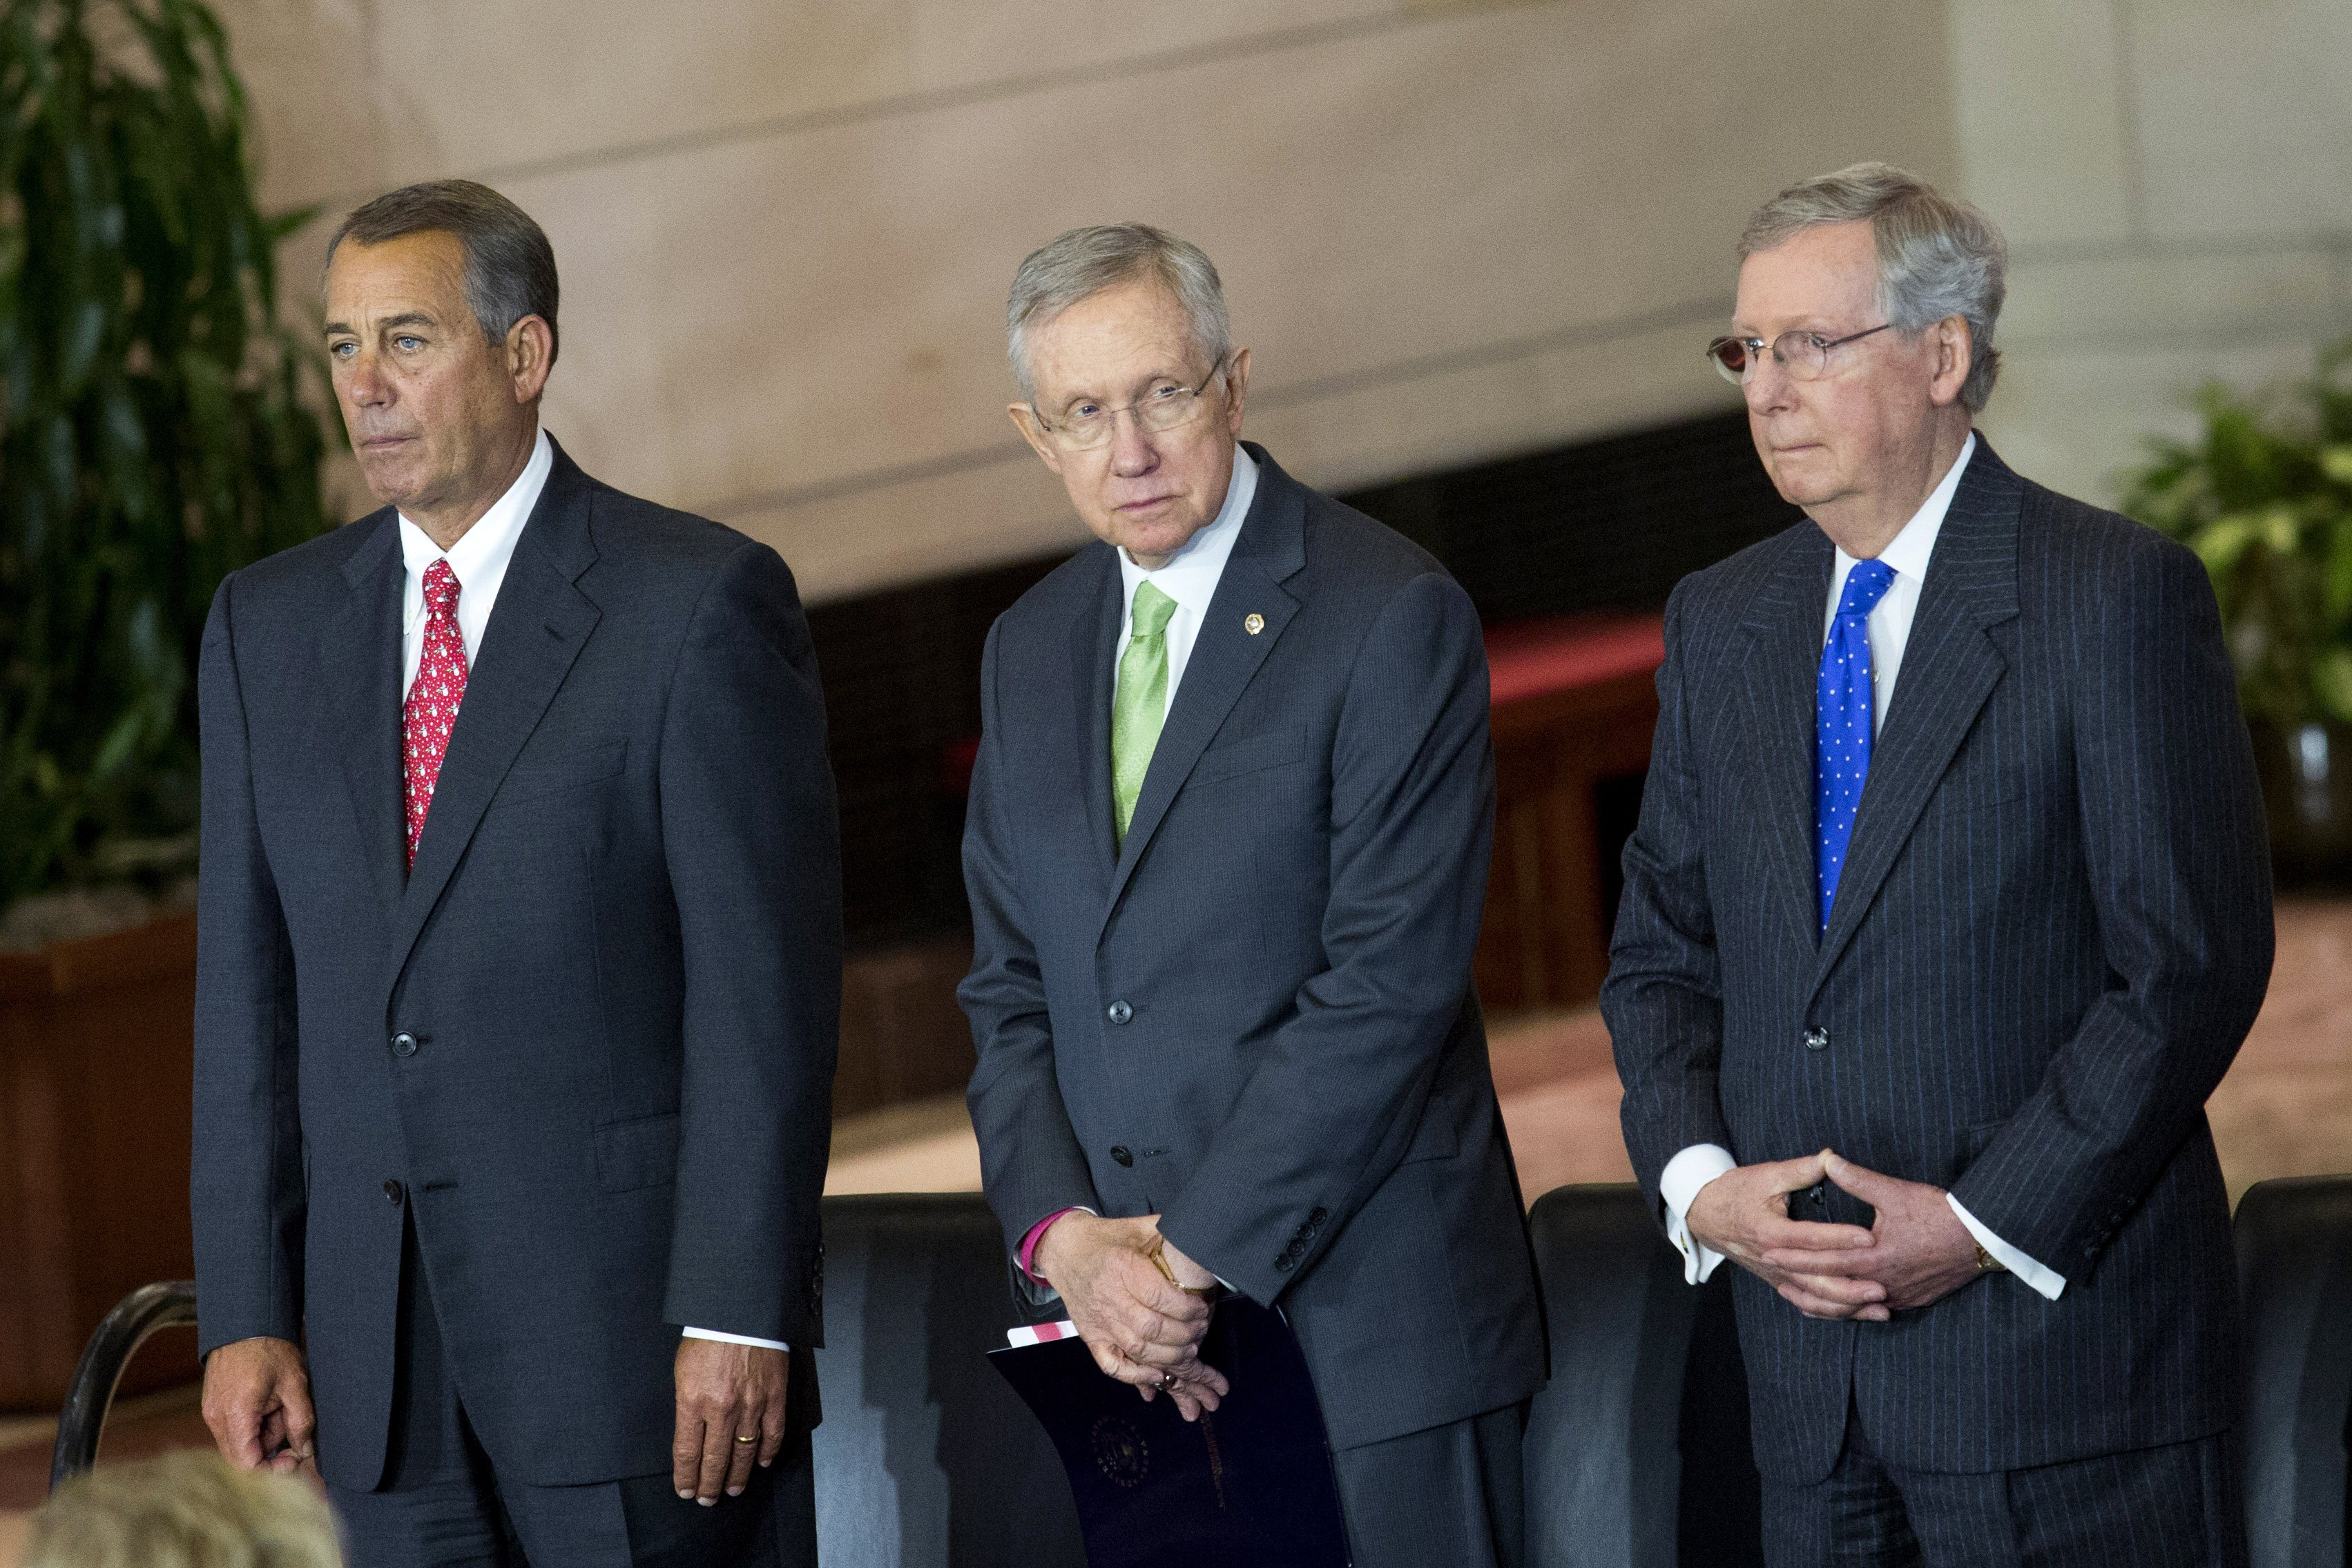 From Left: Speaker of the House John Boehner, Senate Majority Leader Harry Reid and Senate Minority Leader Mitch McConnell gather onstage prior to the start of a Congressional Gold Medal Ceremony for World War II era Civil Air Patrol members on Dec. 10, 2014 in Washington D.C.